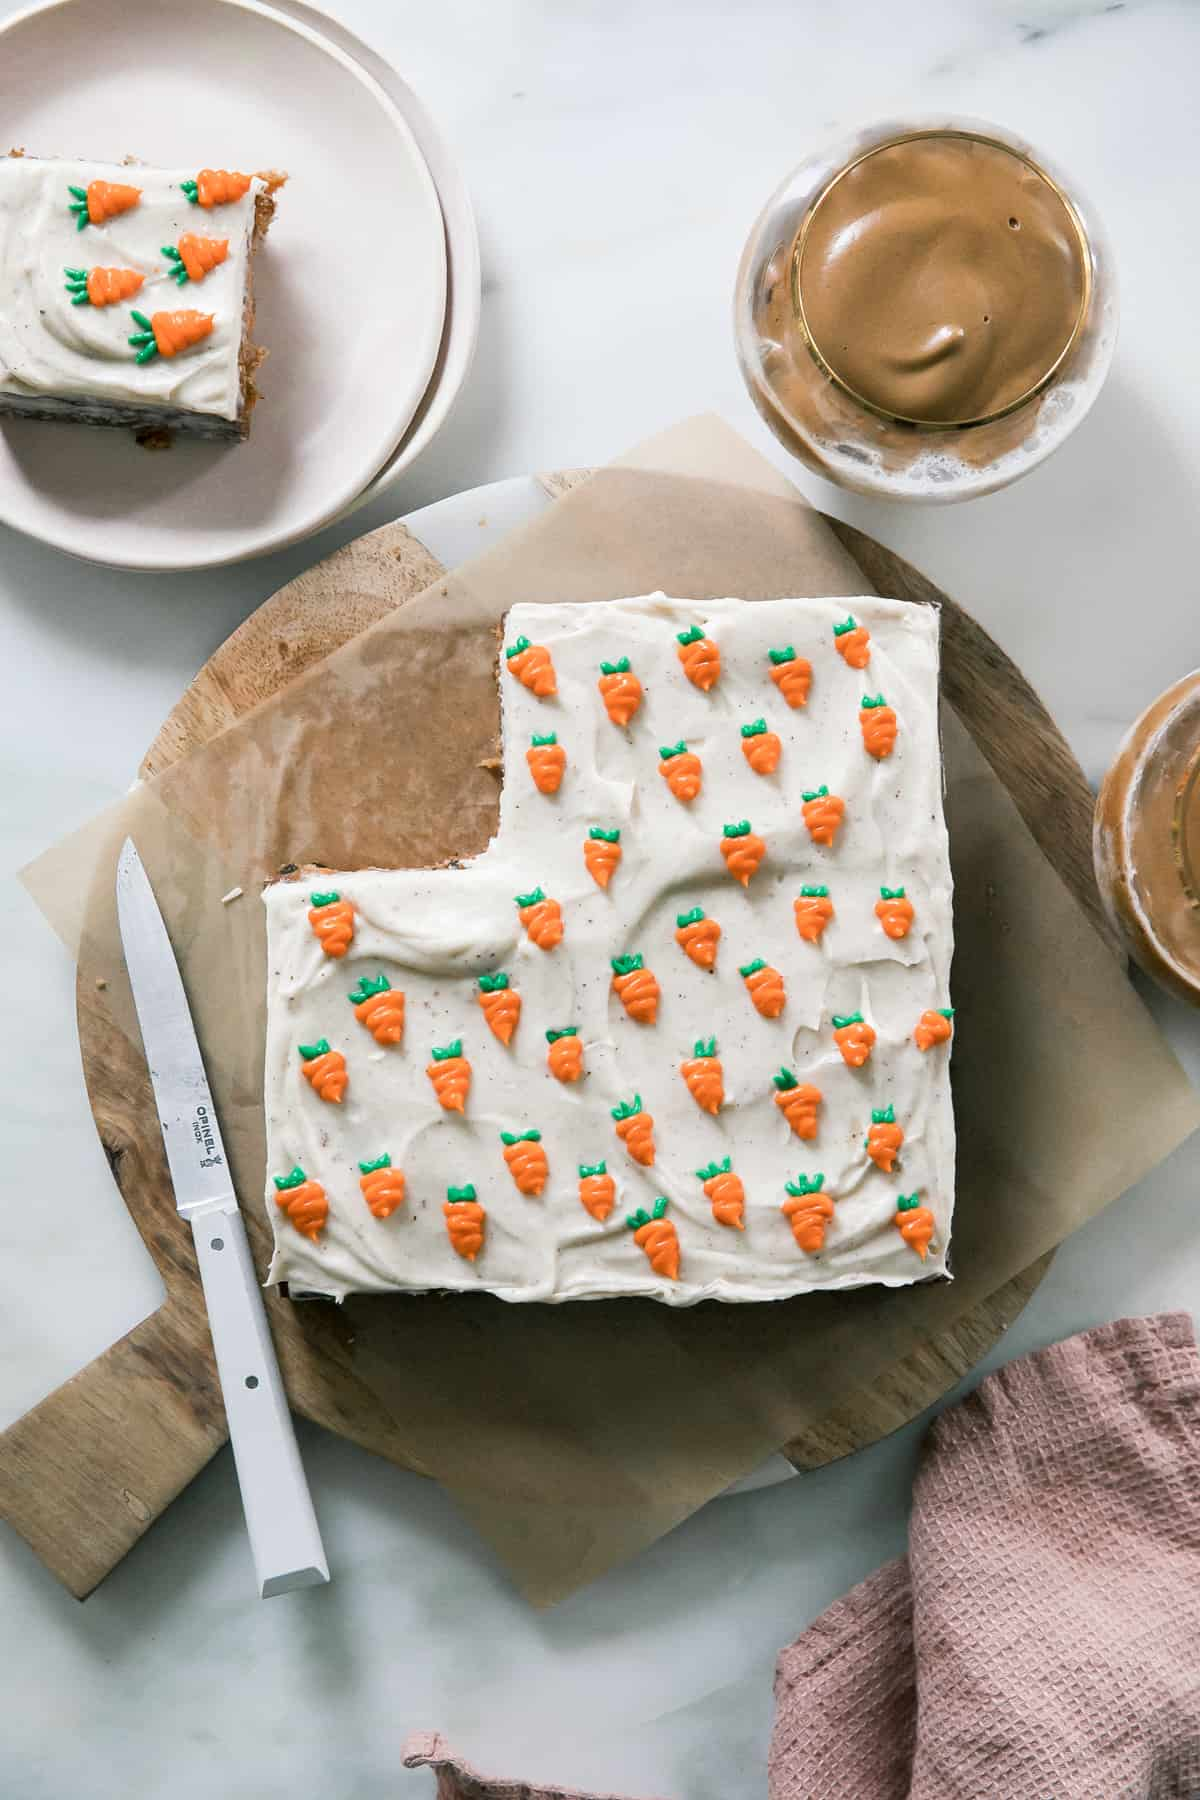 Carrot cake topped with piped on carrots on a cutting board